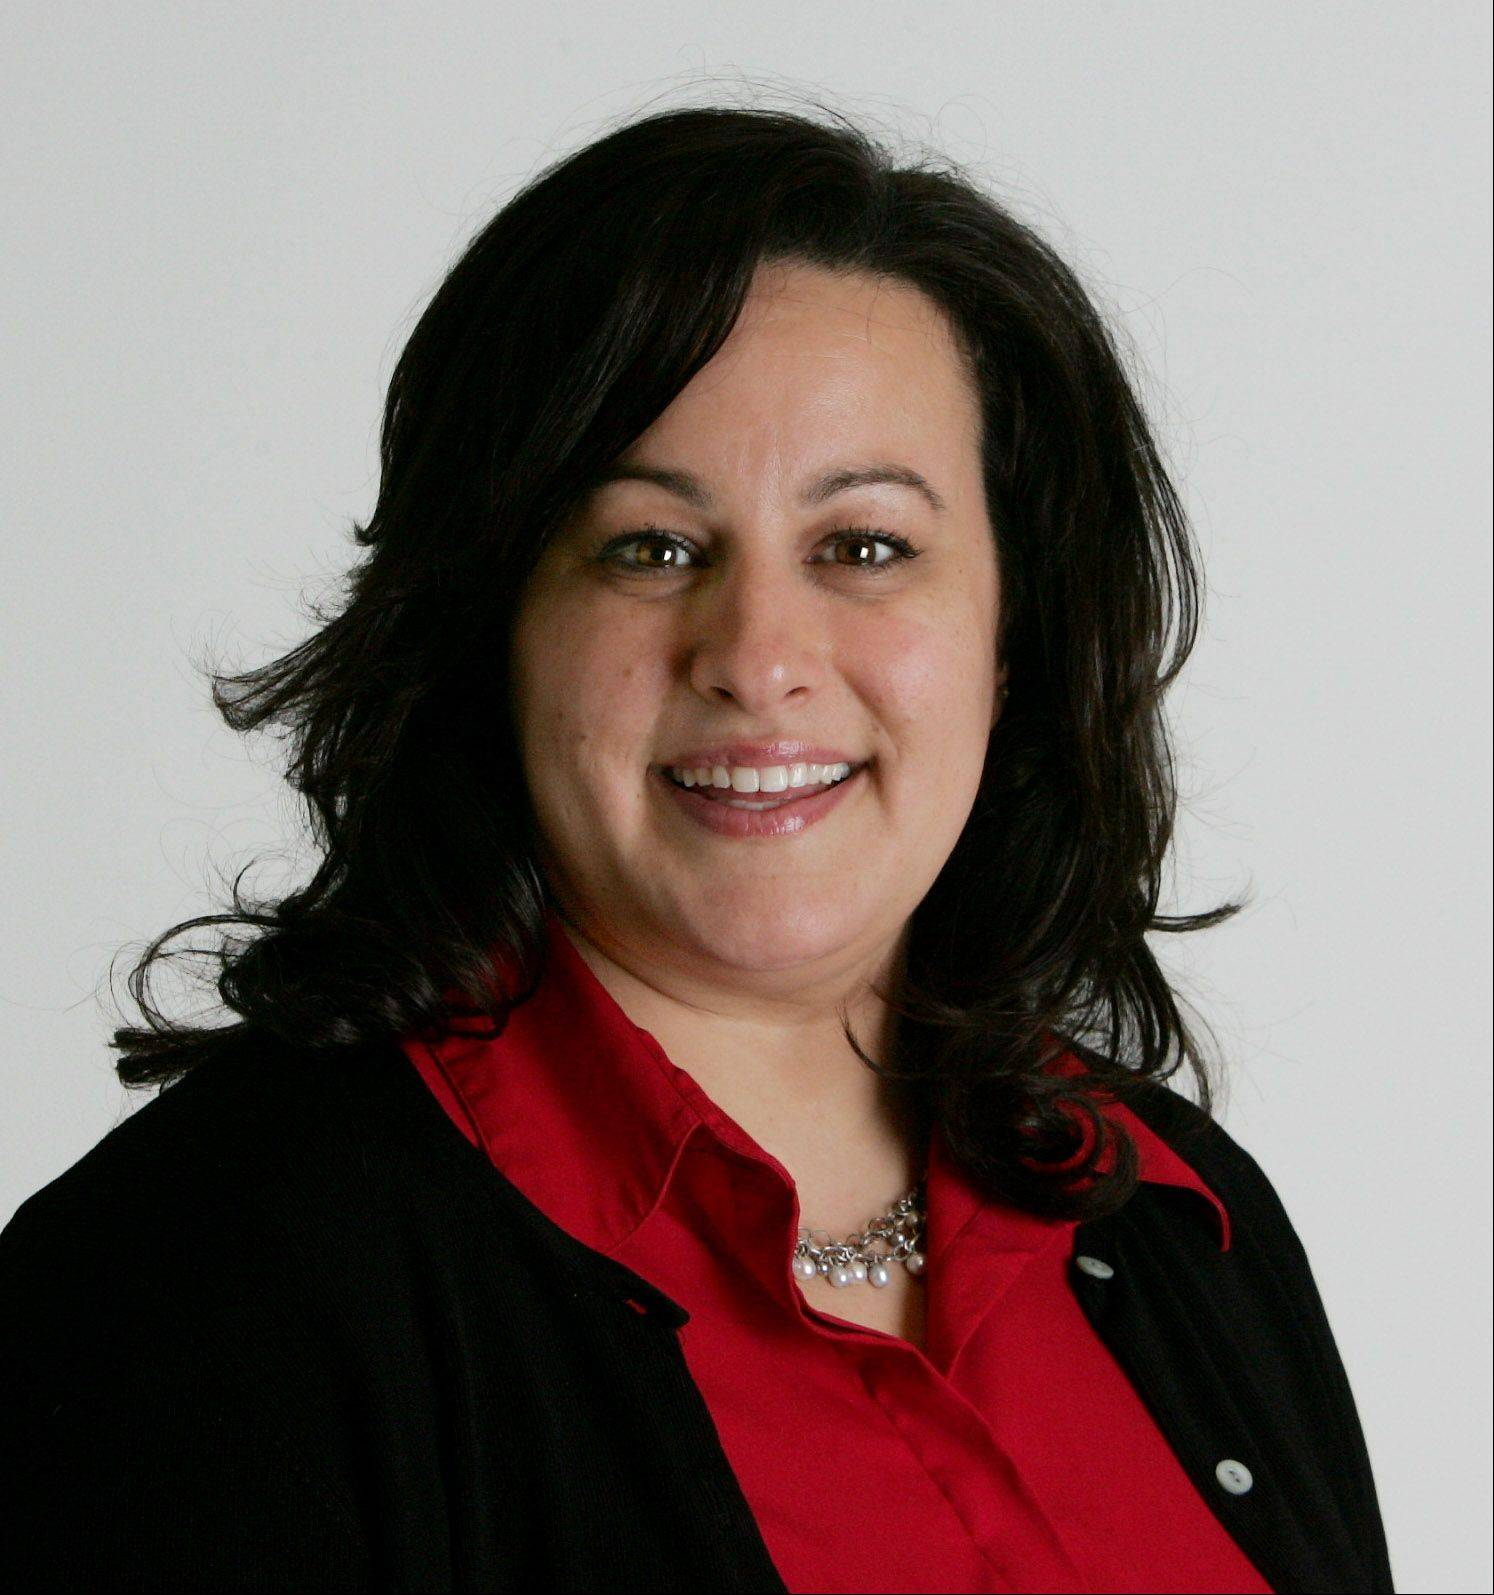 Island Lake Village Clerk Jen Gomez